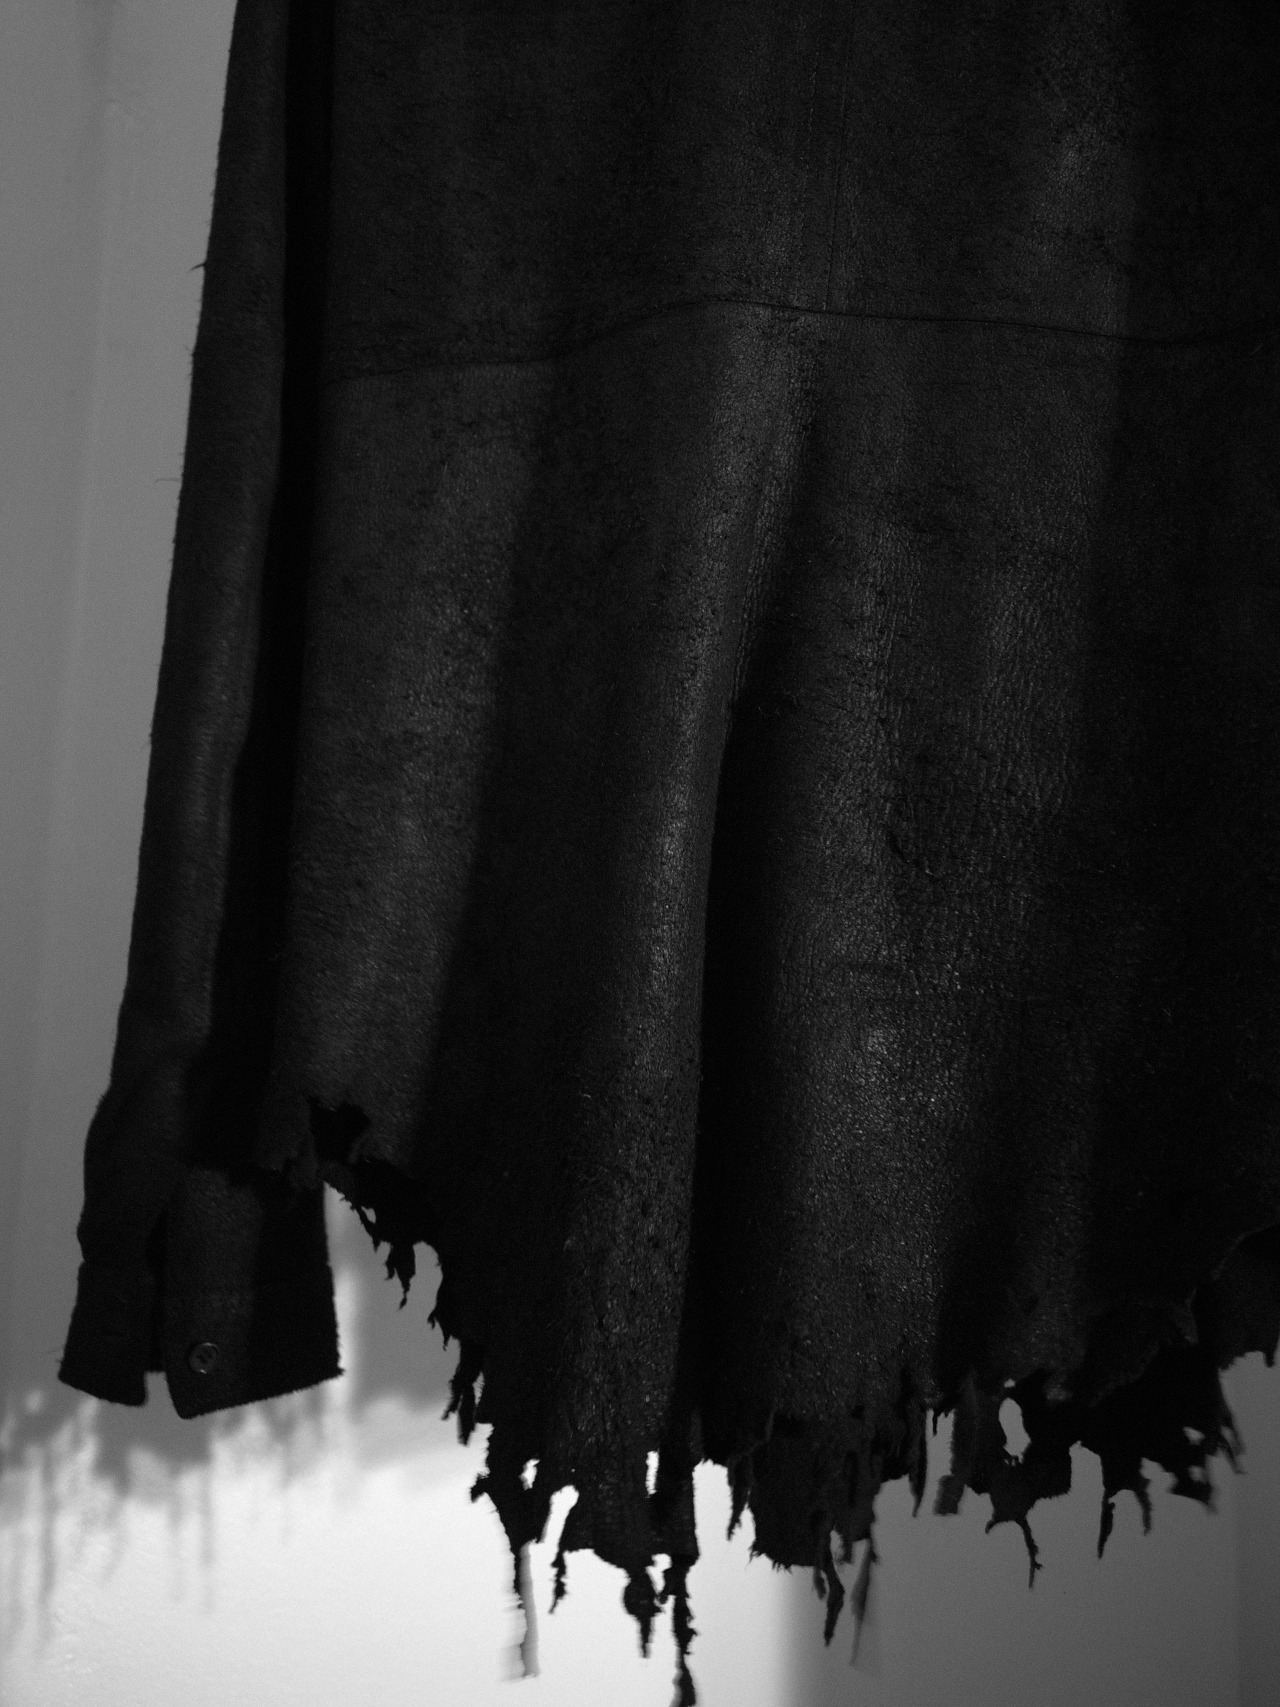 shuitsang:  Julius Deerskin Shredded Hem Buttons up, Spring/Summer 09.